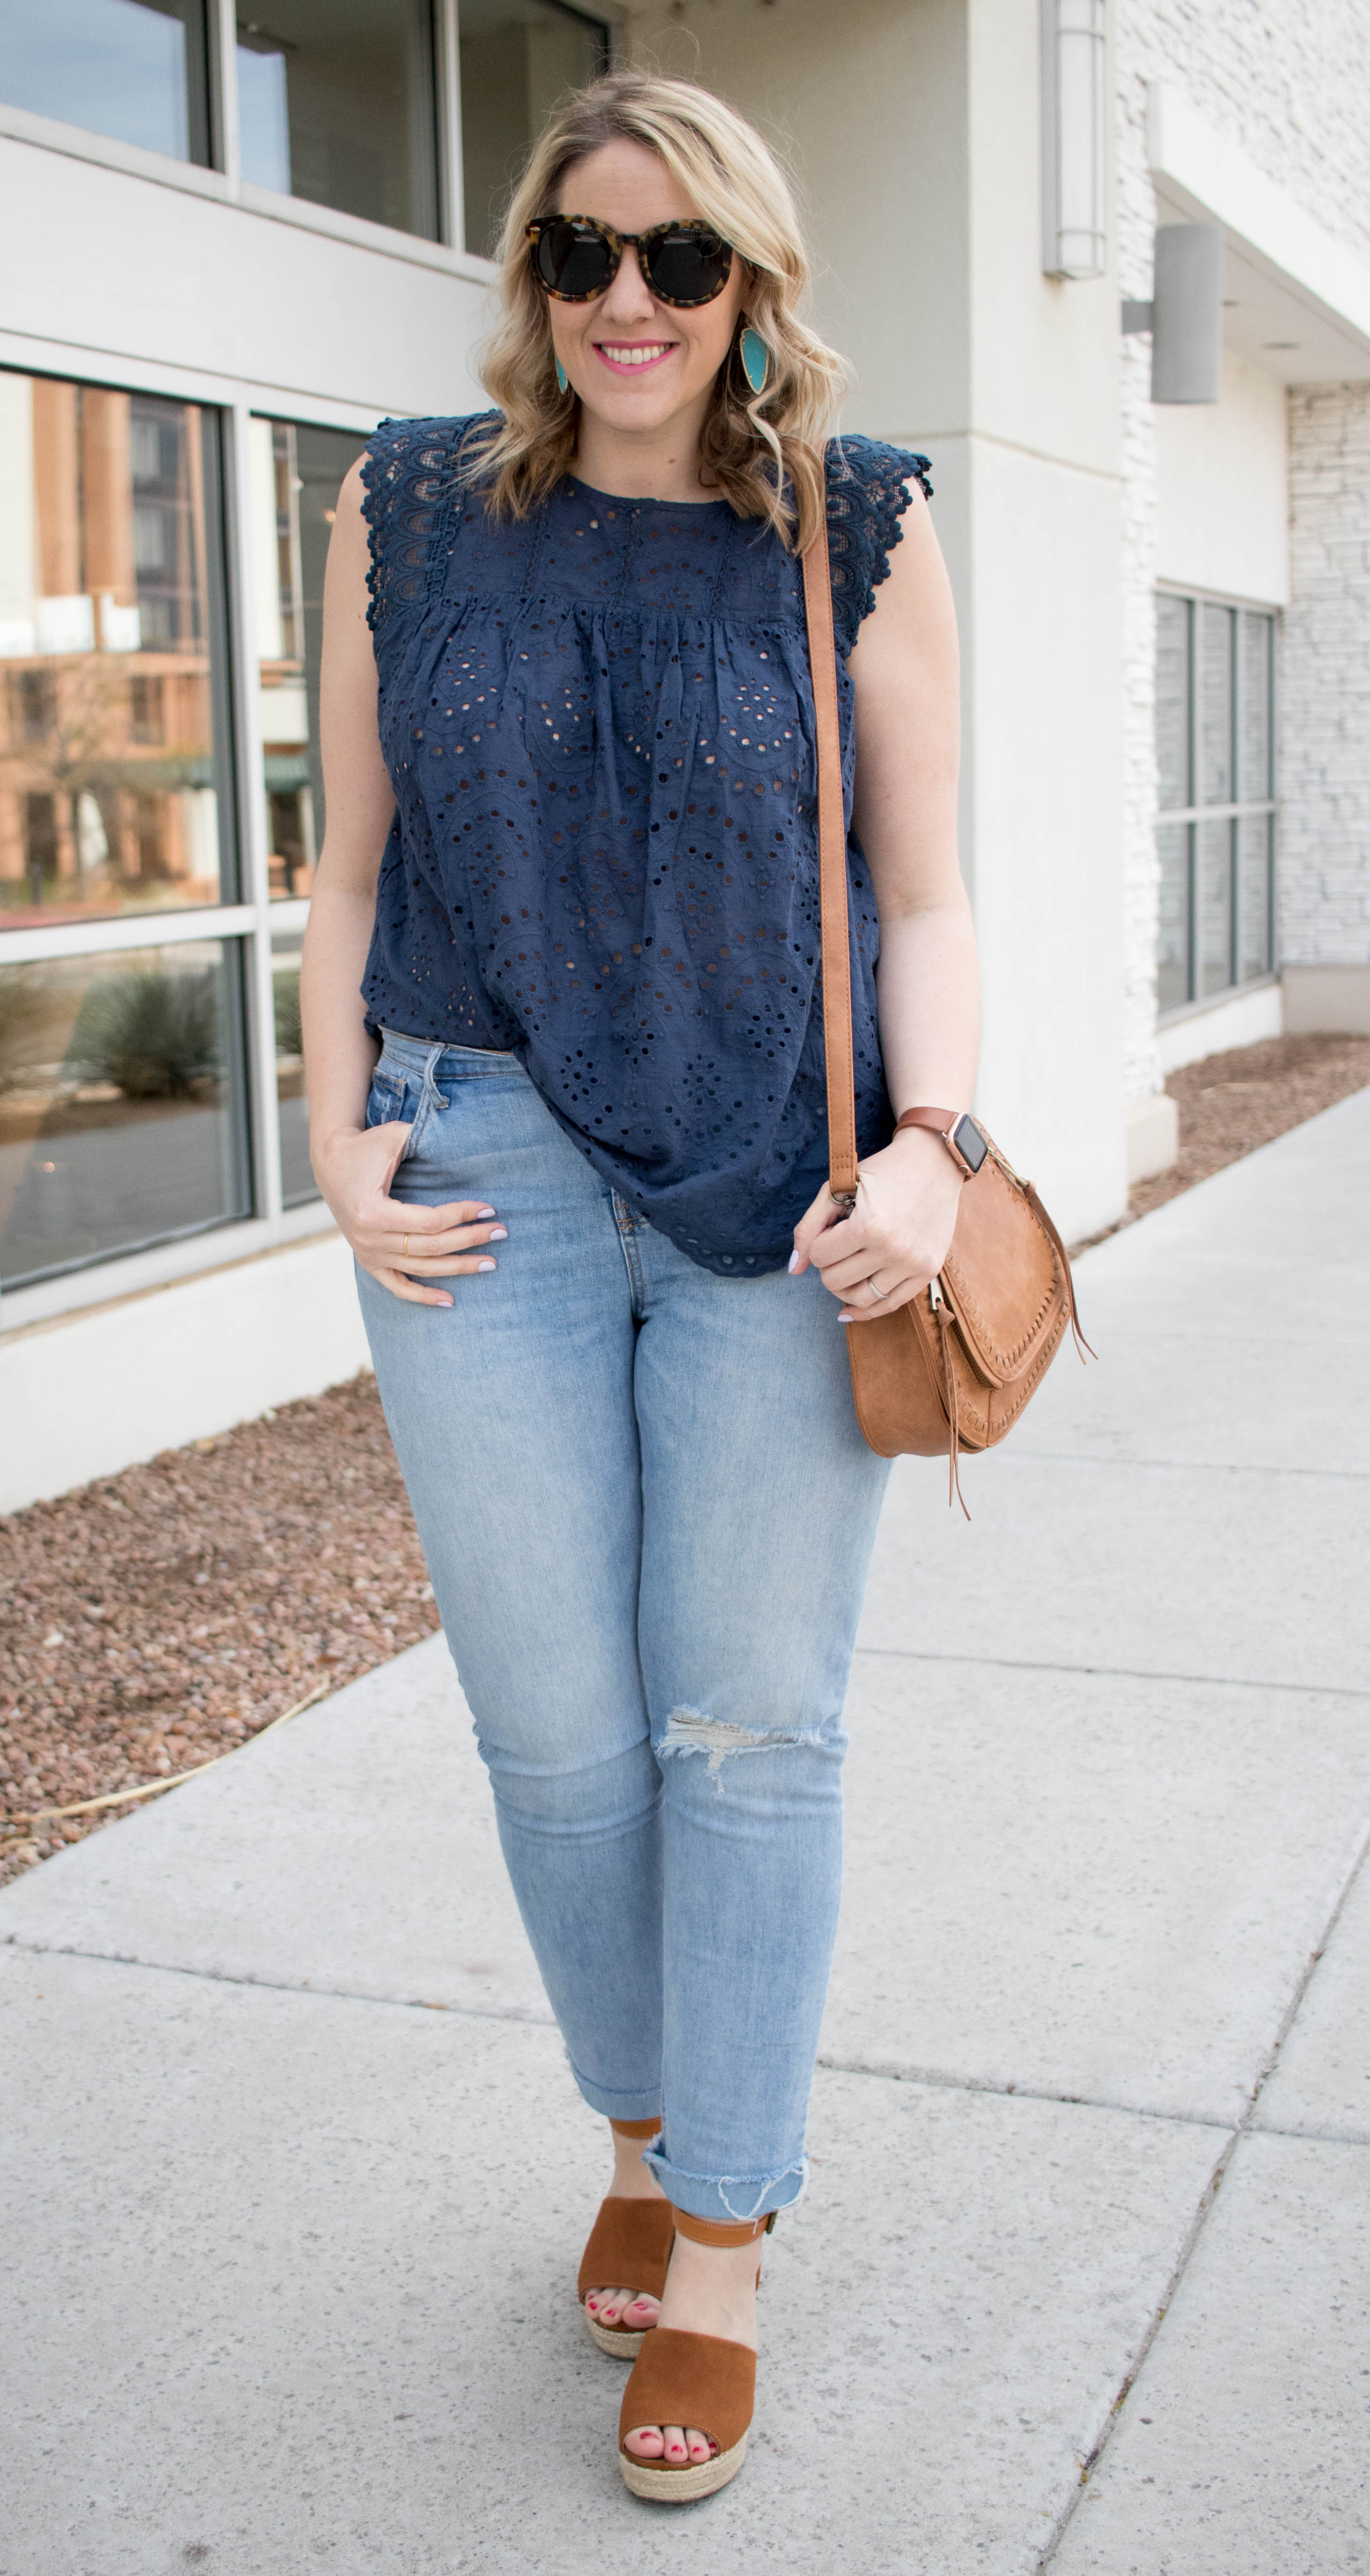 eyelet blouse and boyfriend jeans outfit #styleblogger #theweeklystyleedit #linkup